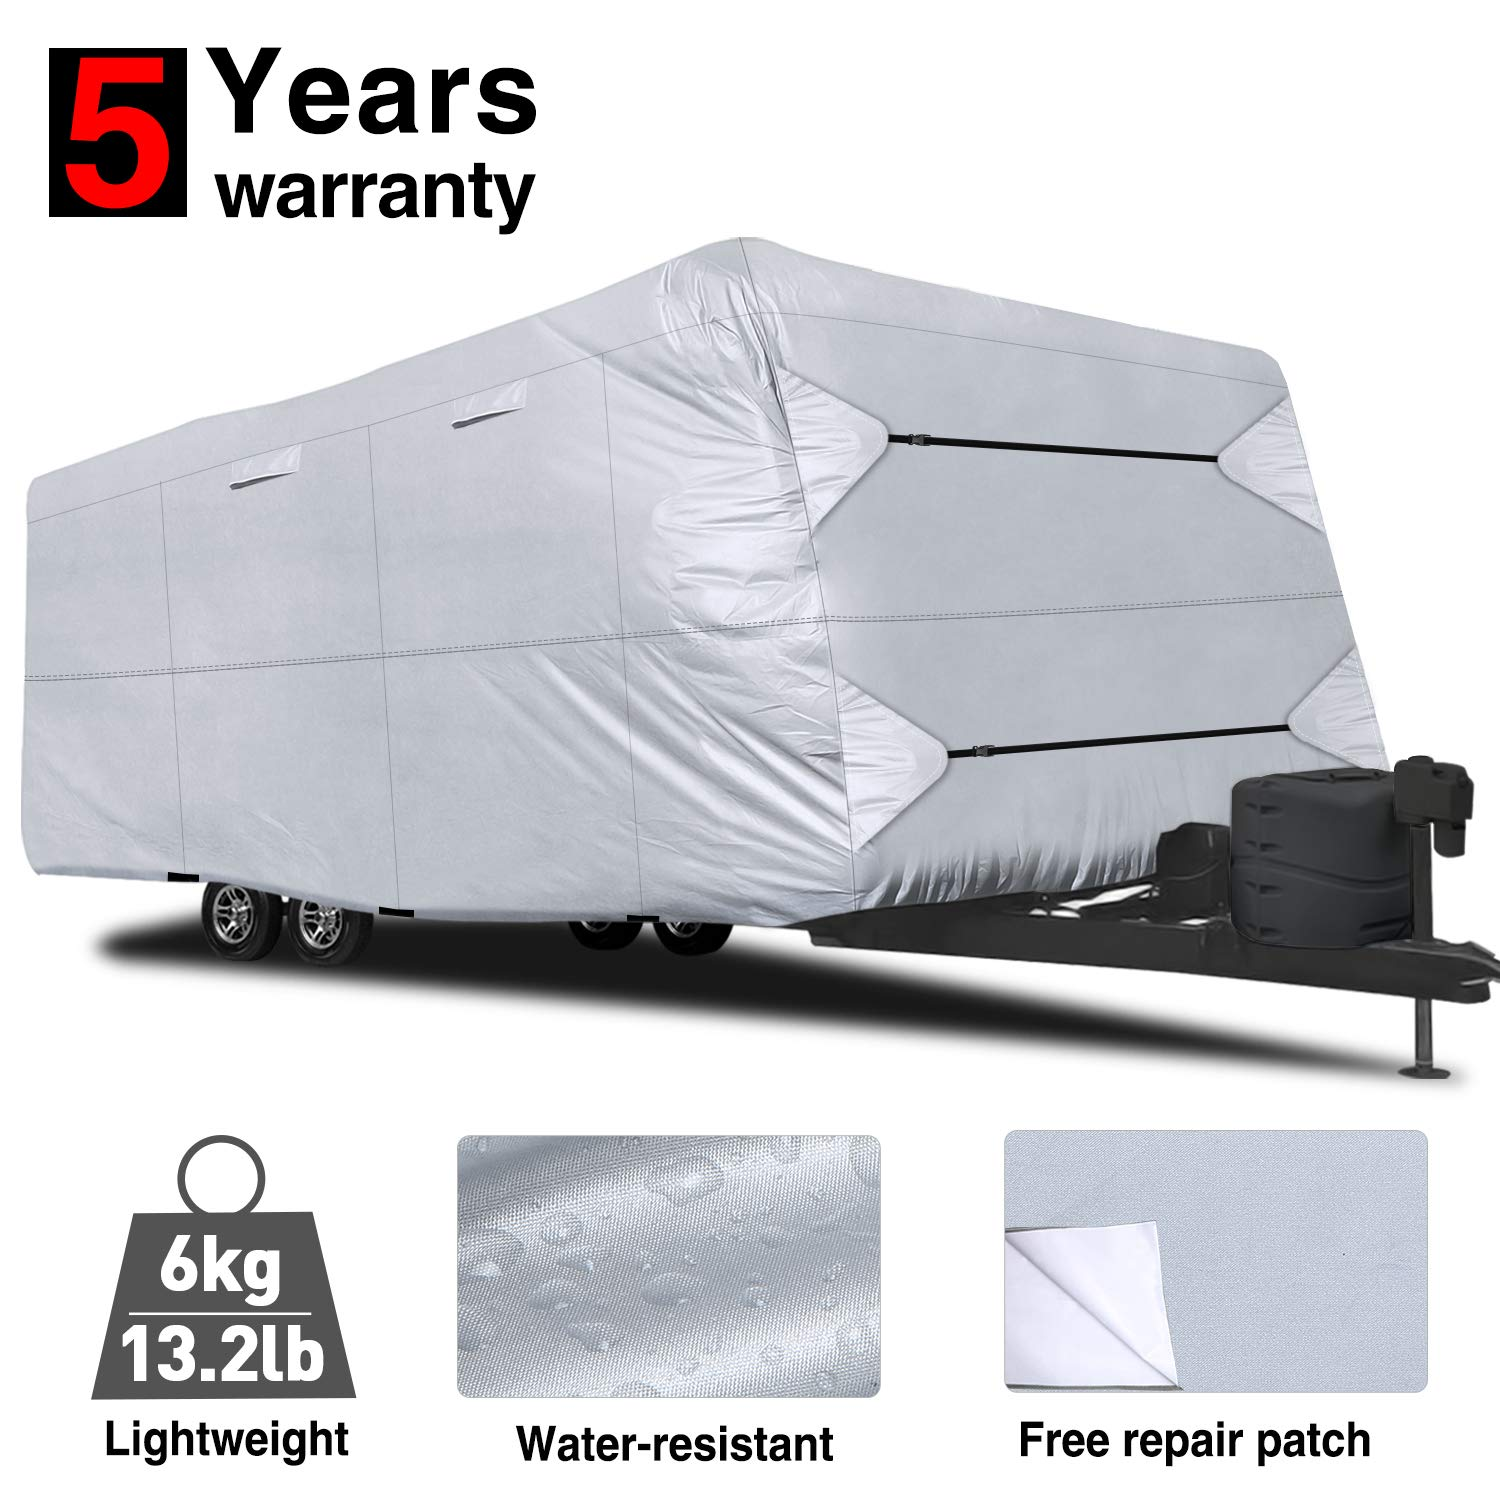 RVMasking Travel Trailer RV Cover 22'-24' L with Free Adhesive Repair Patch, Lightweight & Waterproof Camper Cover